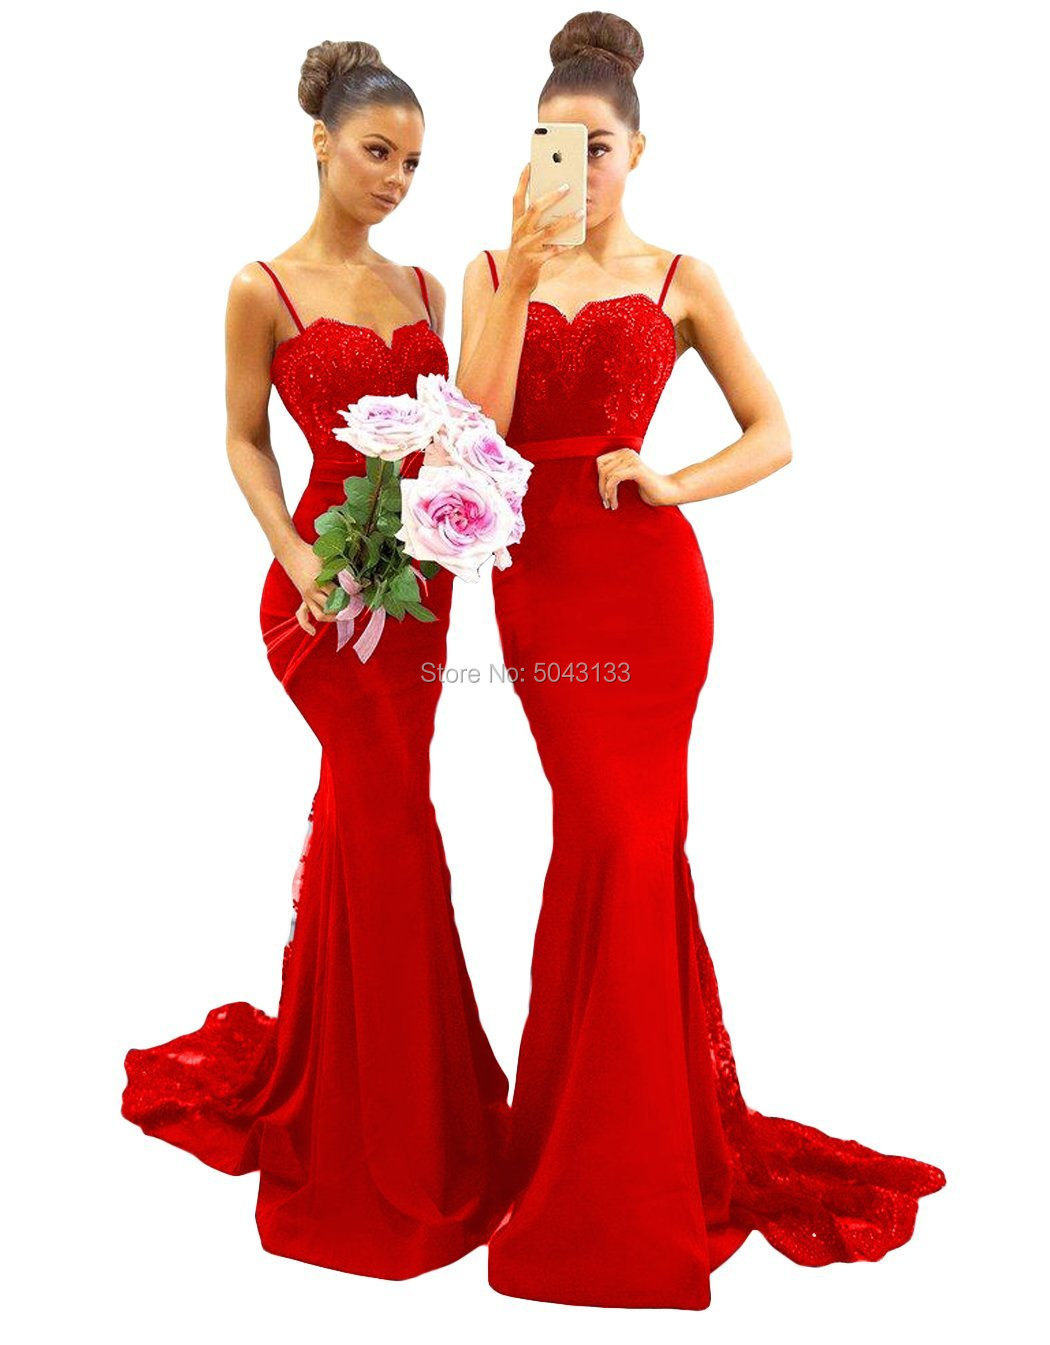 Sexy Sweetheart Straps Mermaid   Bridesmaid     Dresses   2019 Beaded Lace Off The Shoulder Formal Wedding Prom Gowns Long Party   Dress